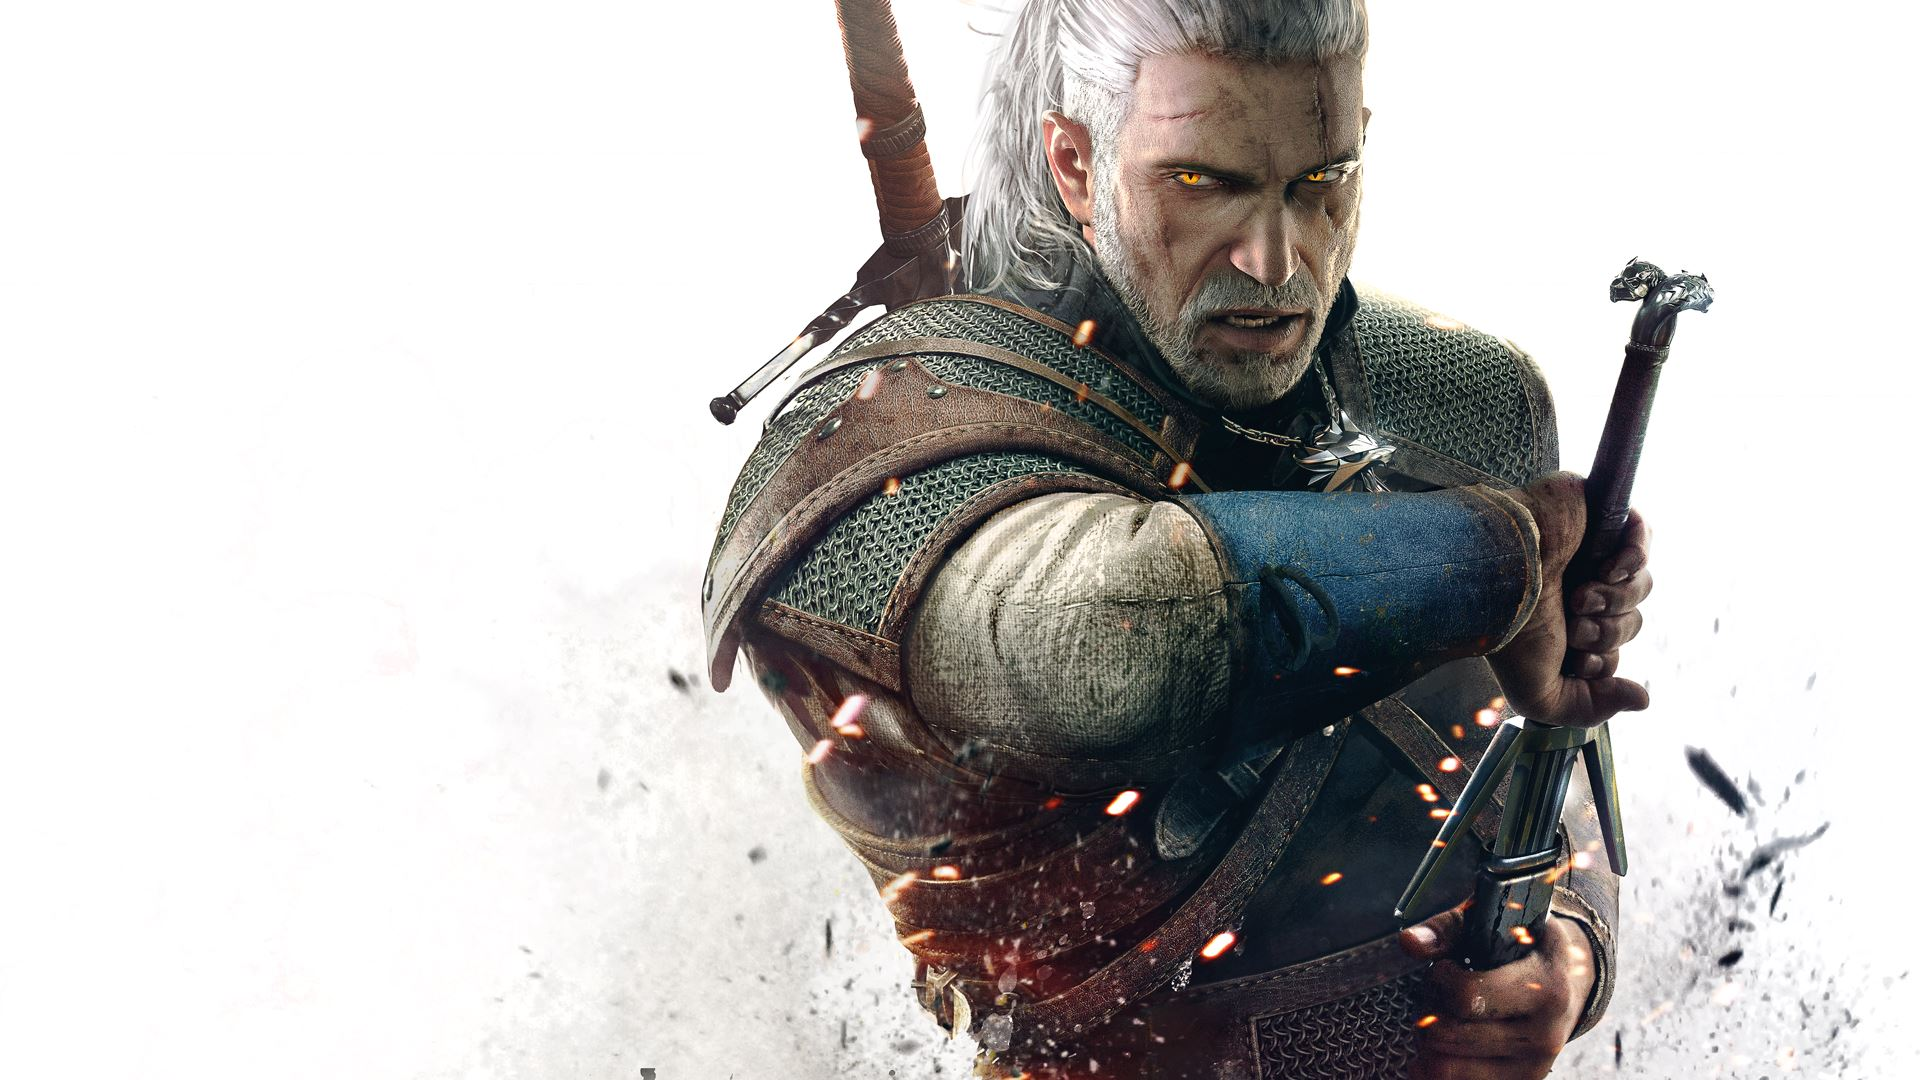 The Witcher 3 Wild Hunt Game 1540.79 Kb